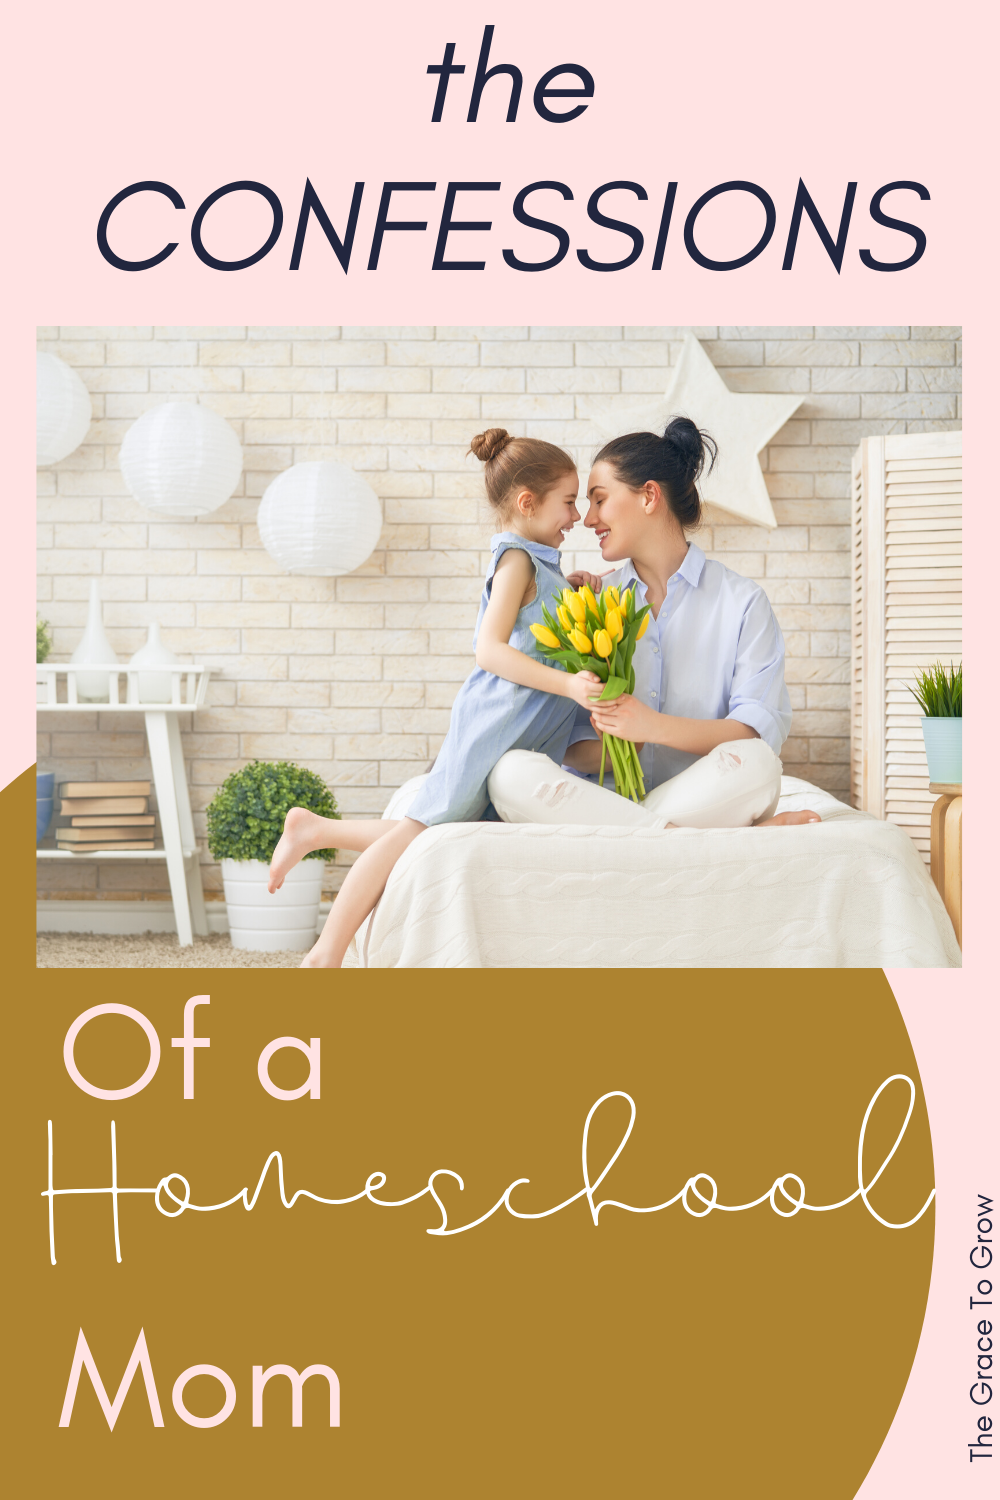 confessions-of-a-homeschool-mom-pinterest-image